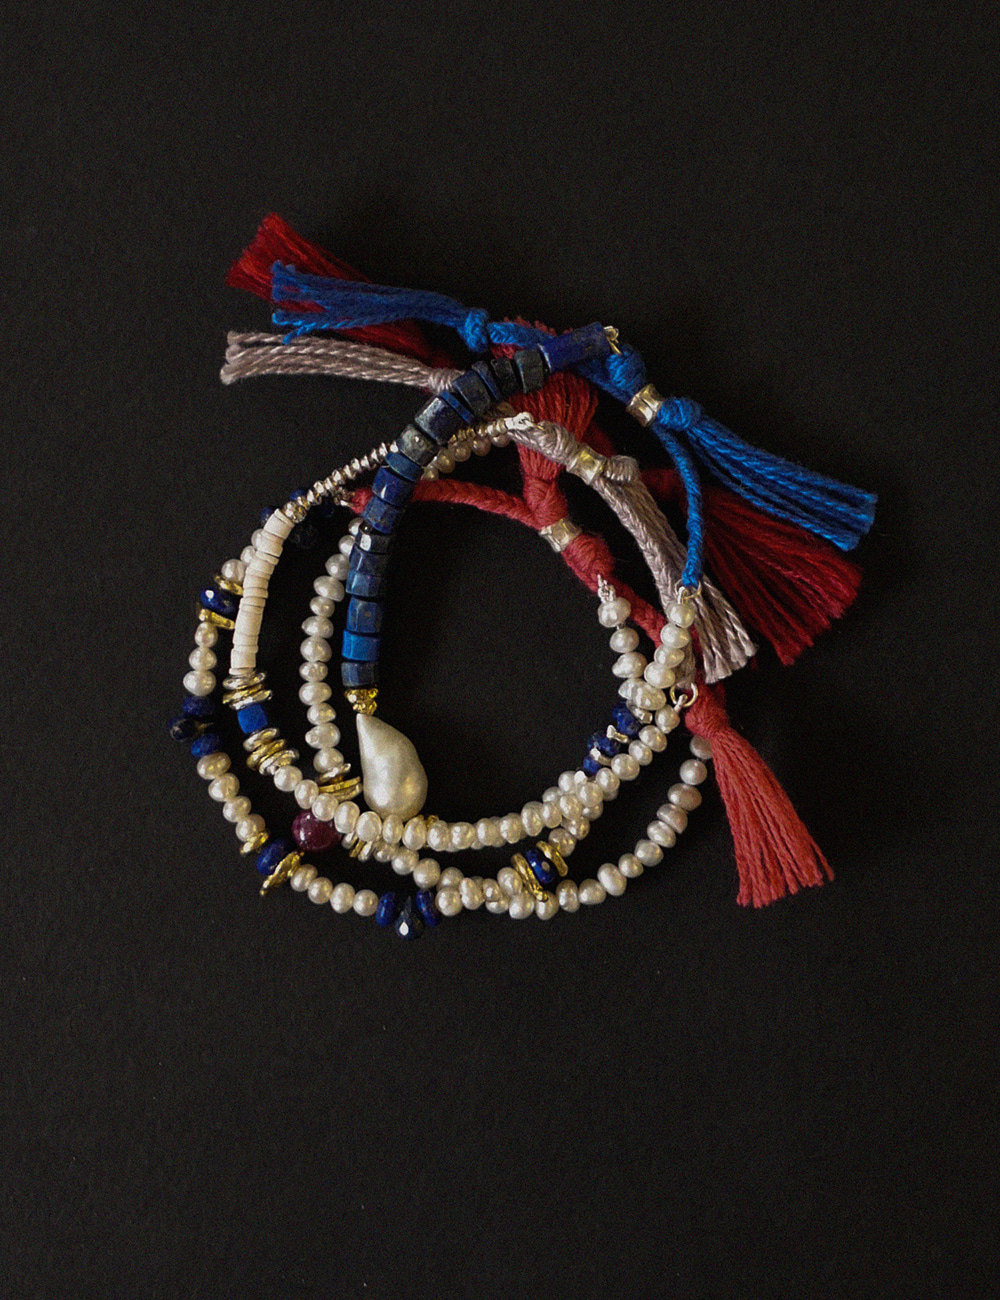 Upcycled One-of-a-kind Bead Bracelet / A